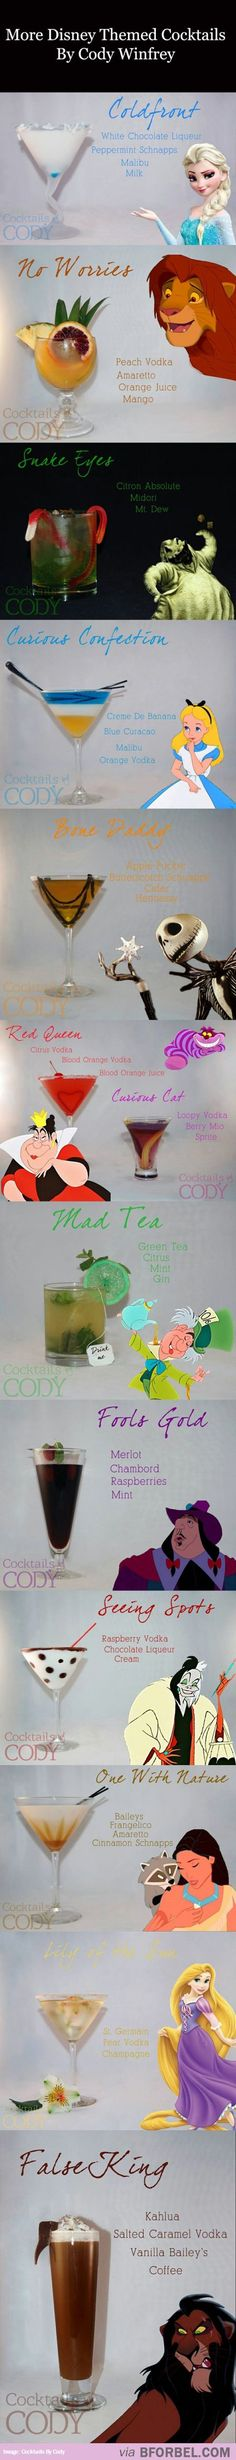 I don't care for Disney themed alcoholic things, but some of these recipes are…